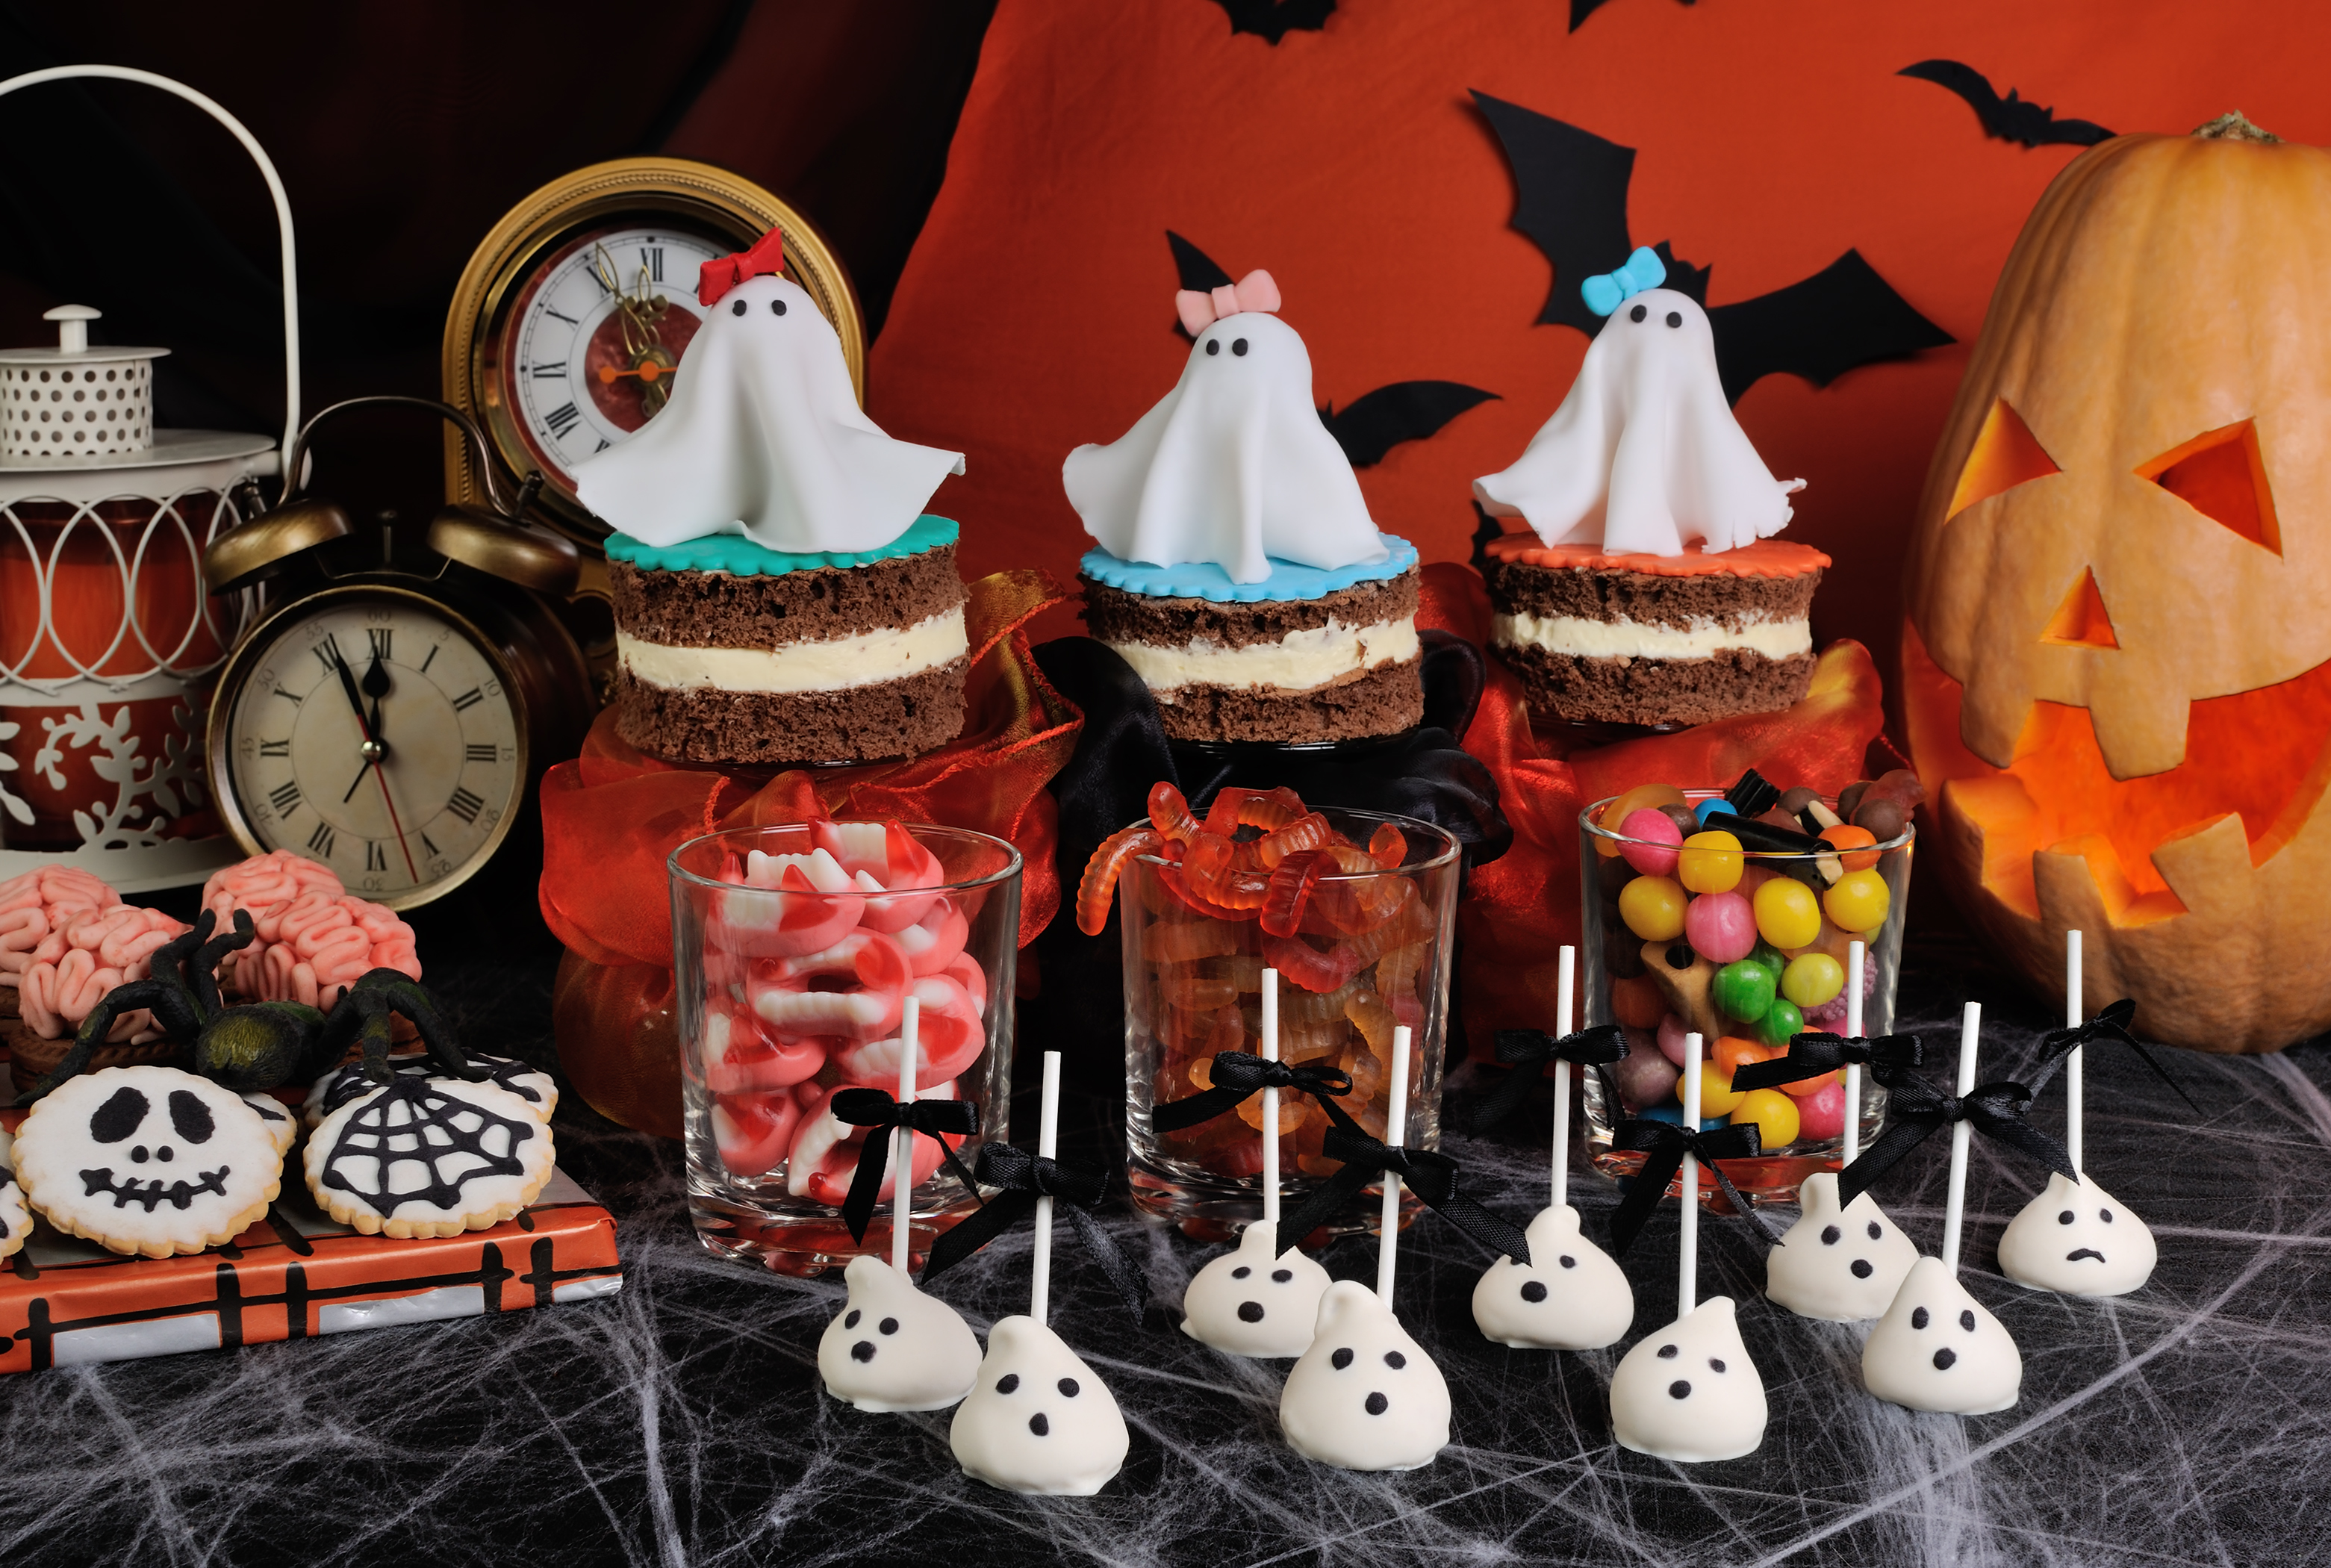 A variety of sweets on the table in honor of Halloween